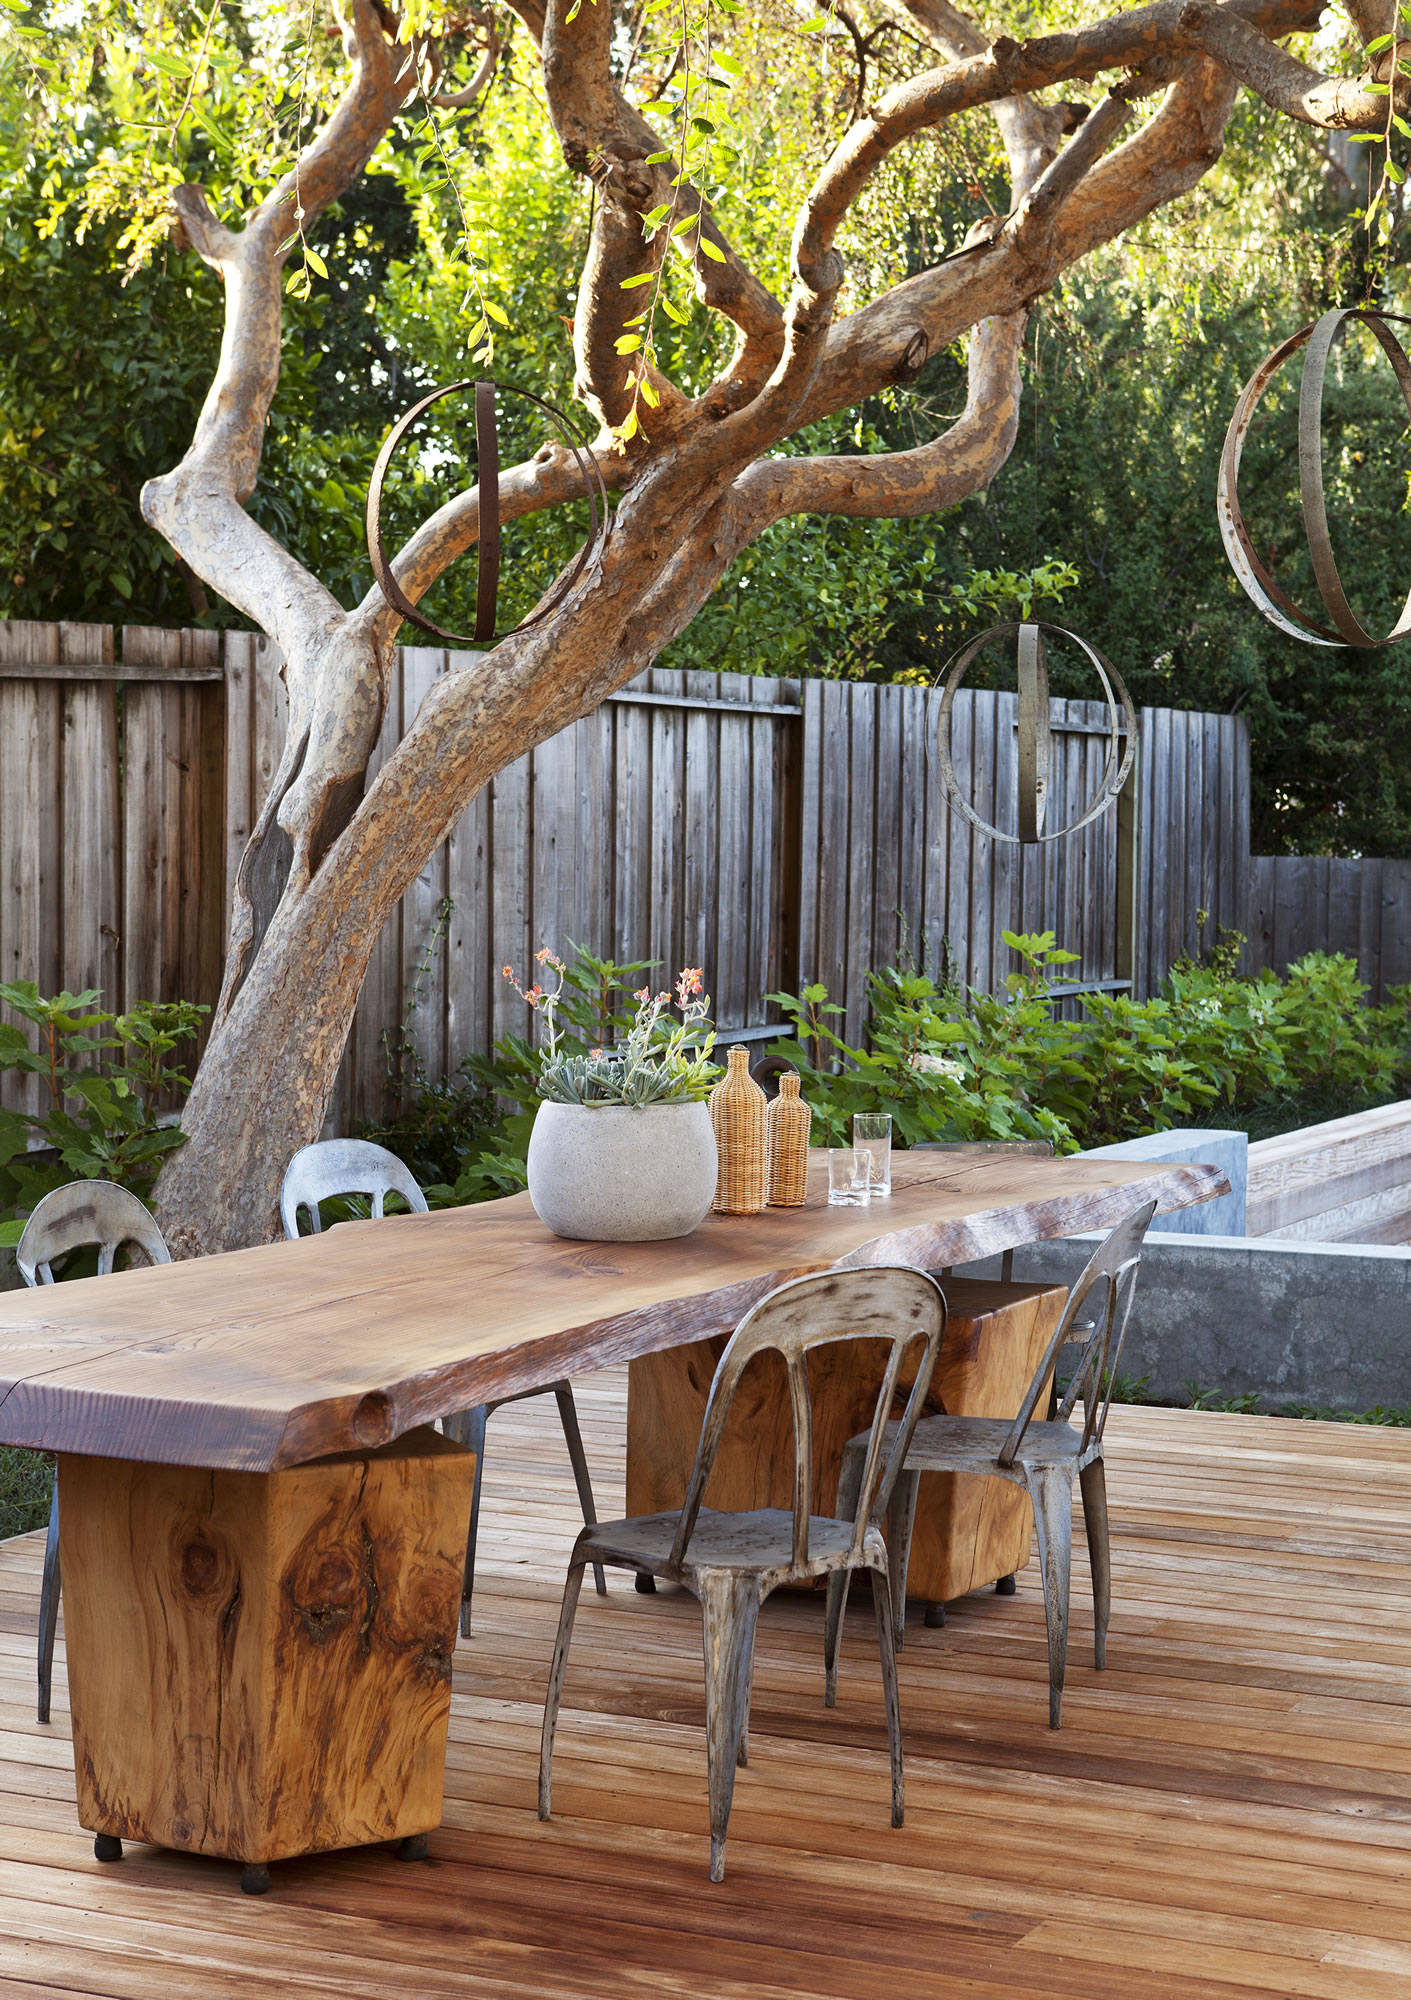 Möbel Aus Holzstämmen 50 Best Patio Ideas For Design Inspiration For 2017